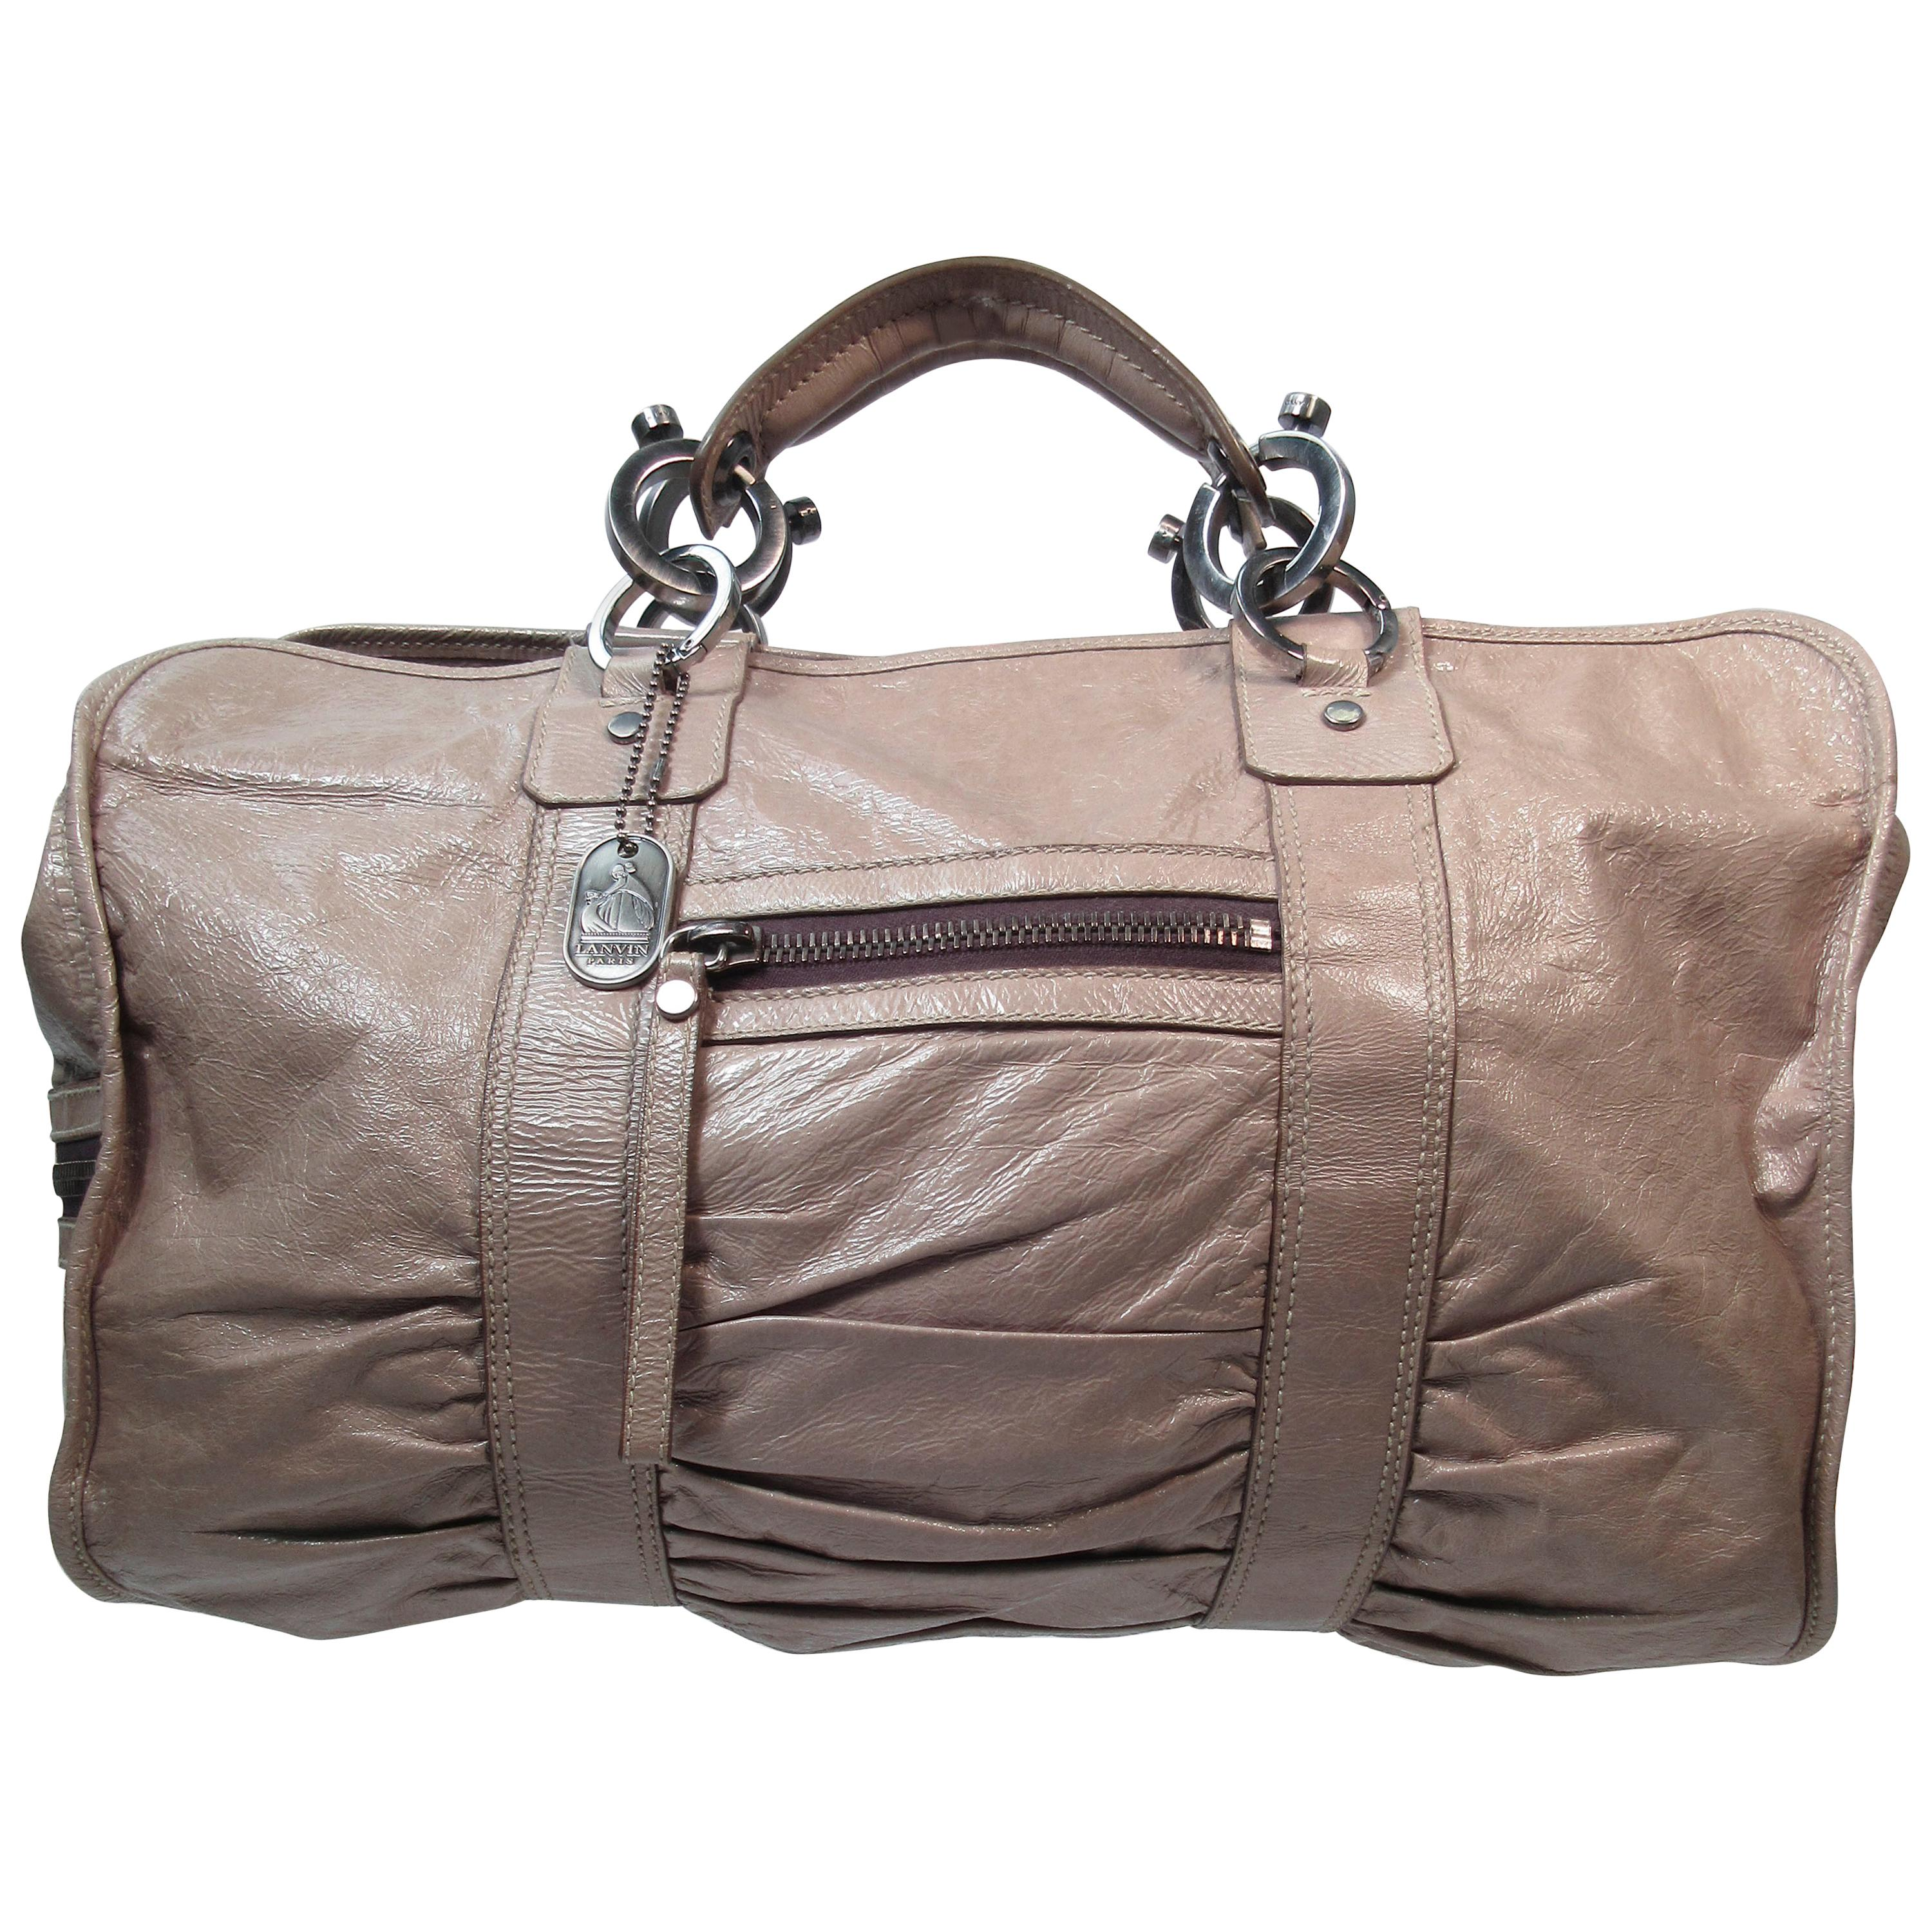 Lanvin Patent Taupe Carry All Handbag with Silver Hardware